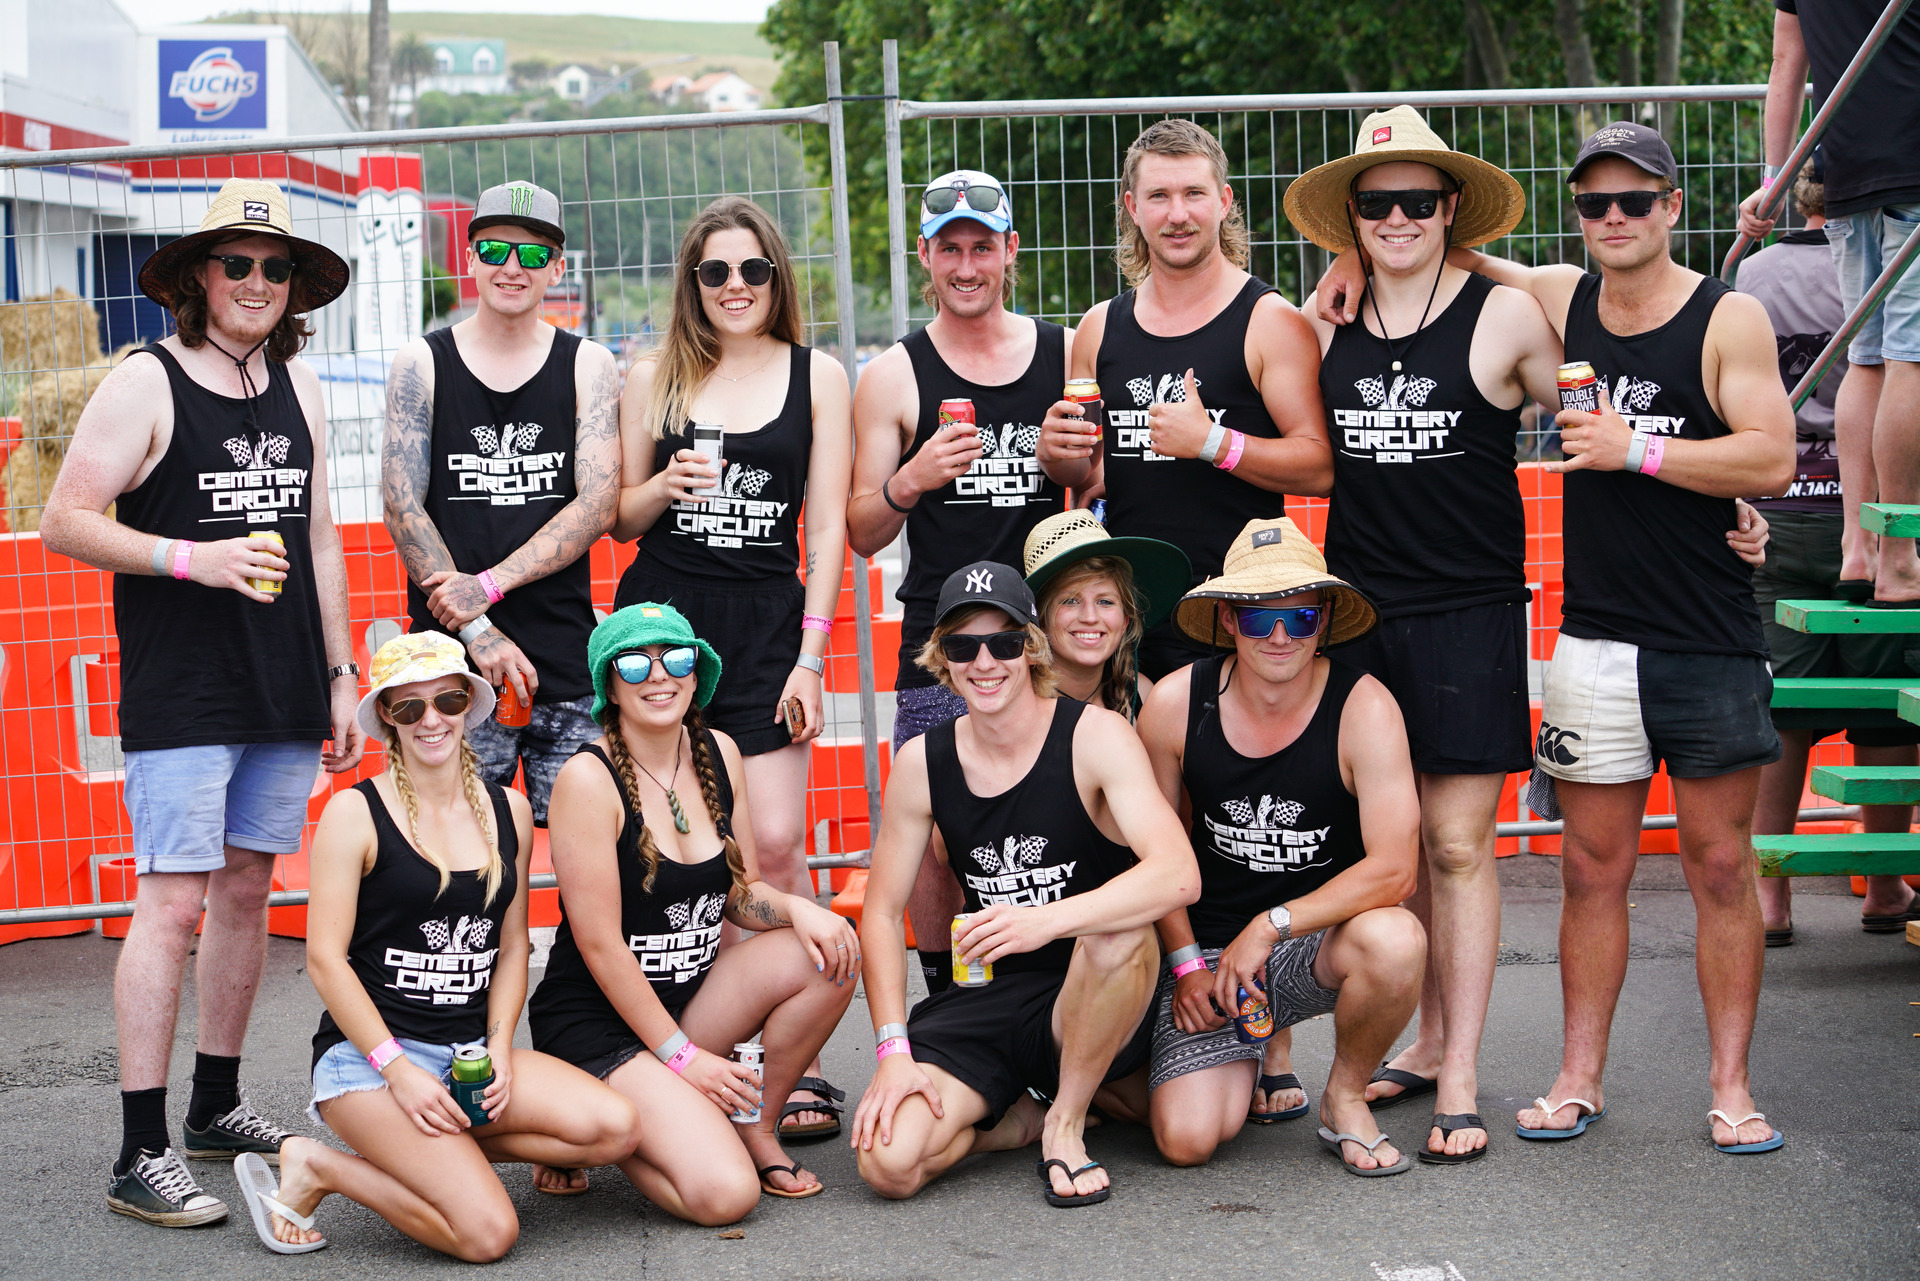 Sun and fun as Boxing Day crowds flock to Cemetery Circuit - NZ Herald